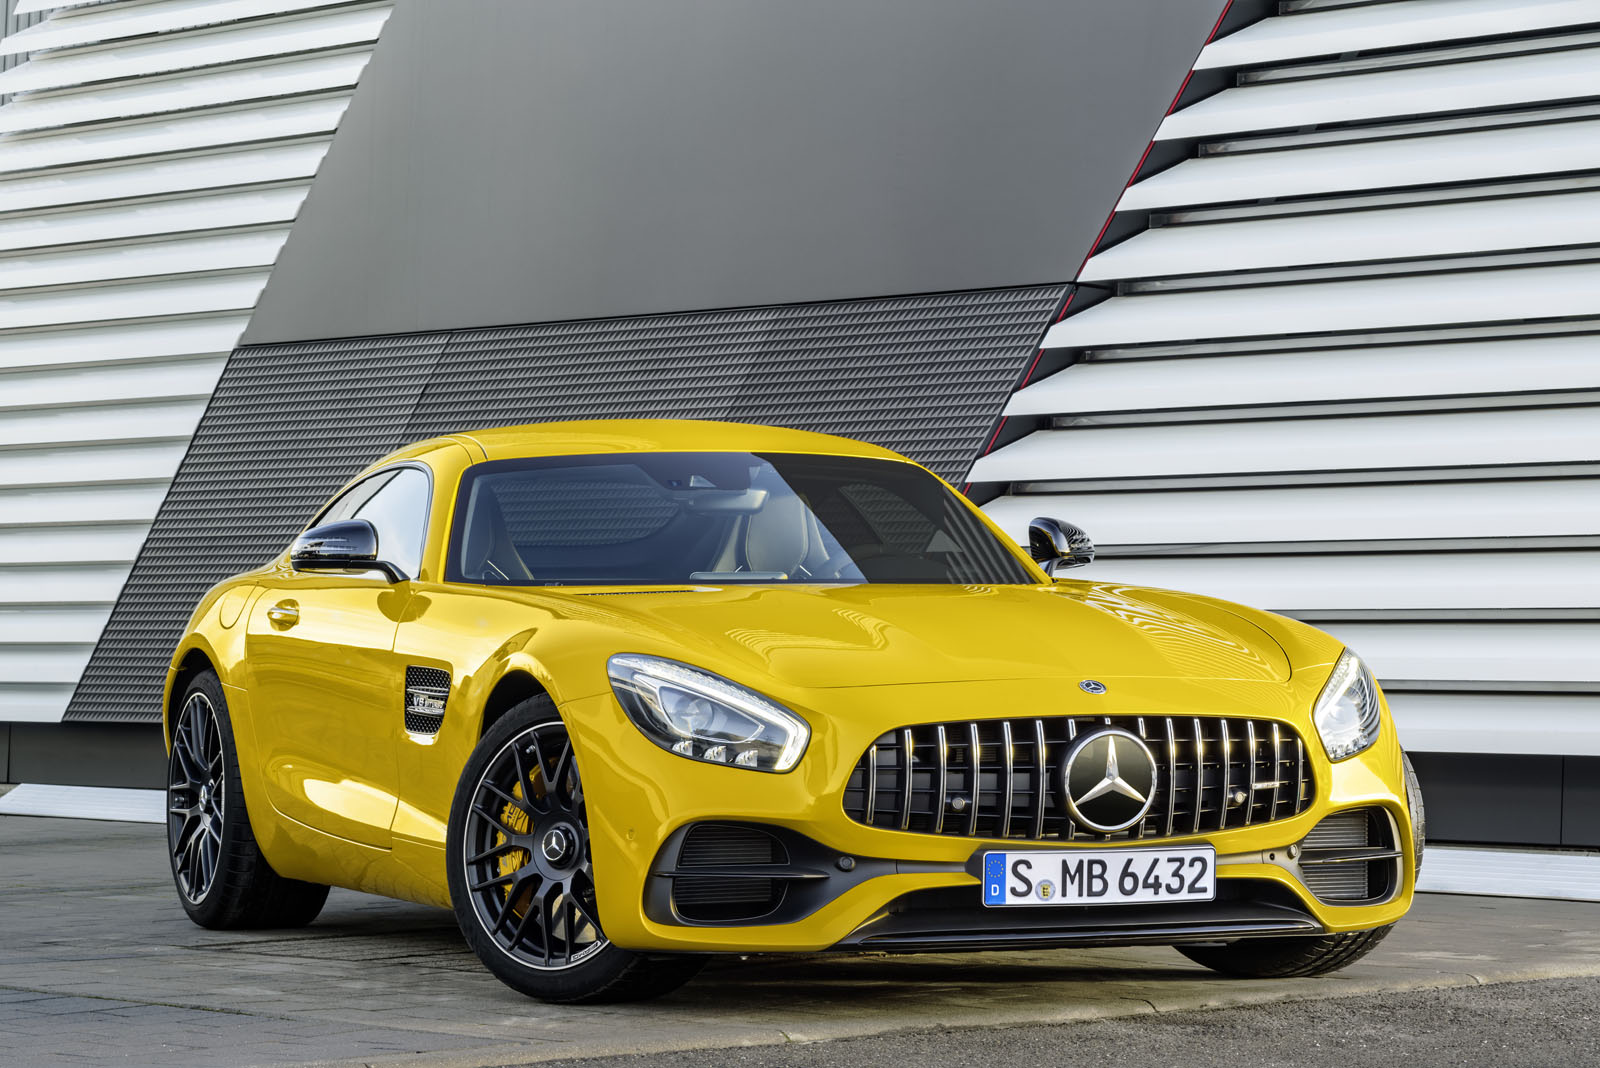 MERCEDES-BENZ AMG GT COUPÉ